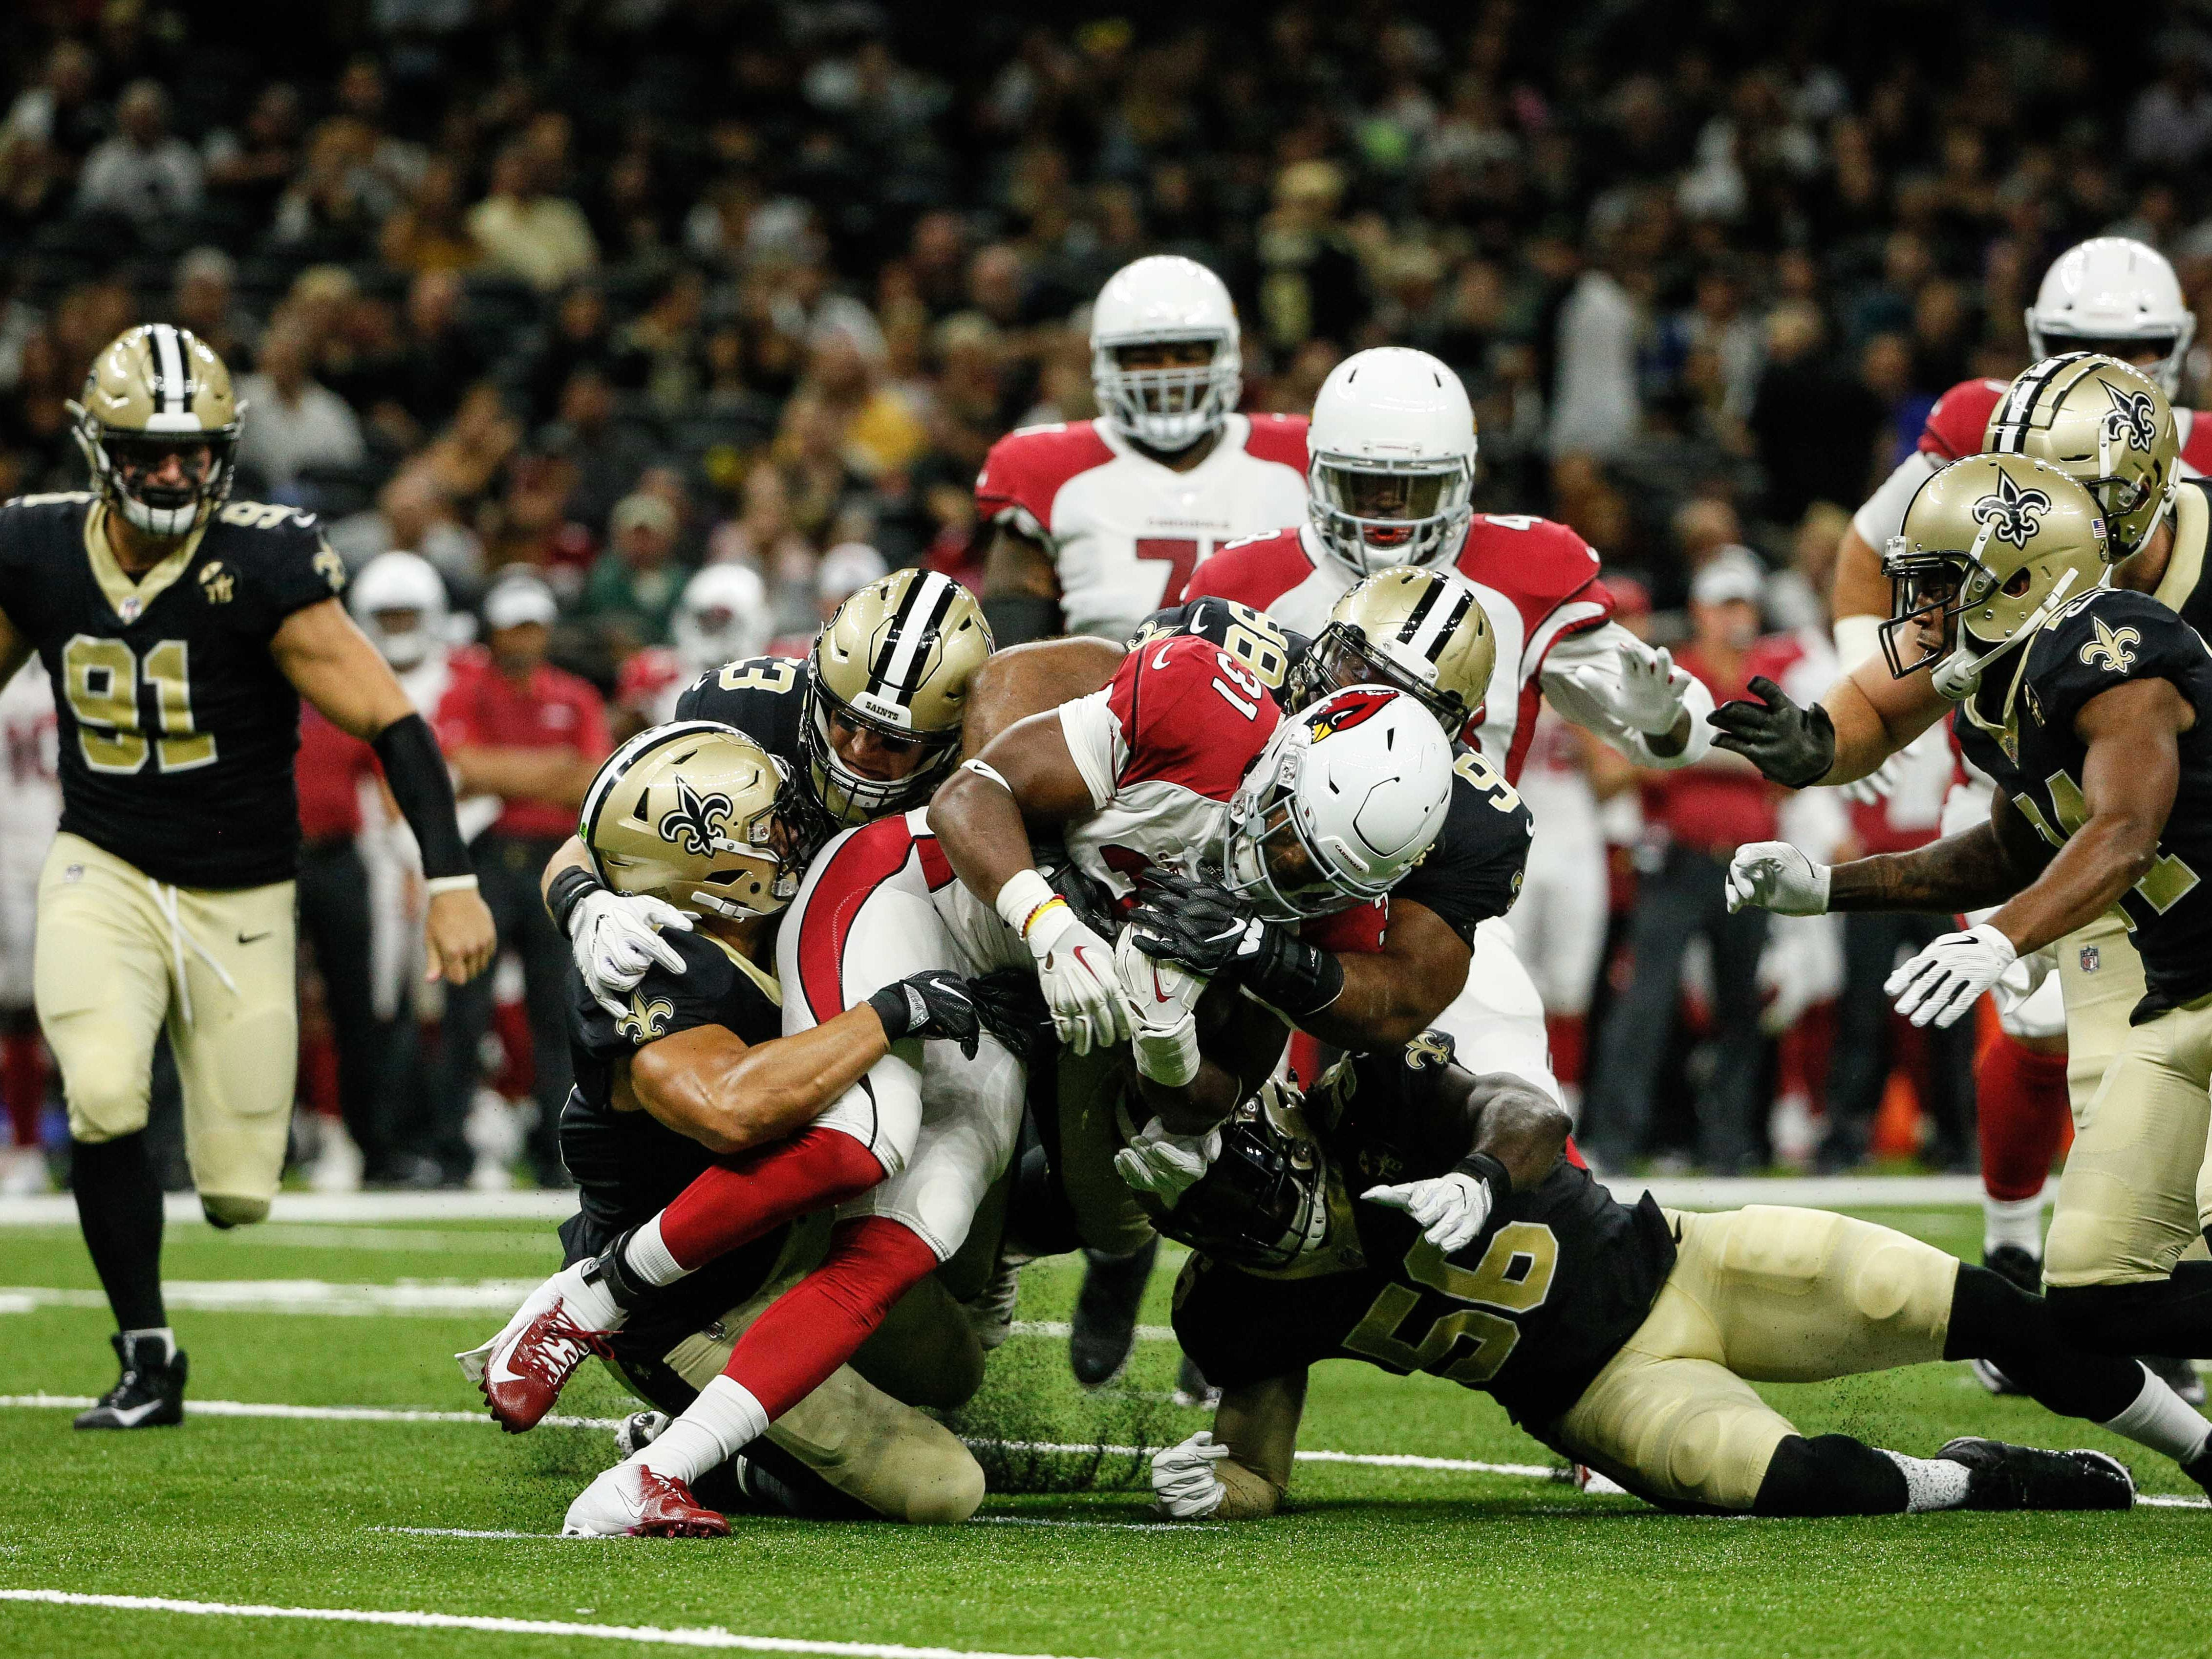 Aug 17, 2018: Arizona Cardinals running back David Johnson (31) is tackled by a group of New Orleans Saints defenders during the first half of a preseason game at the Mercedes-Benz Superdome.